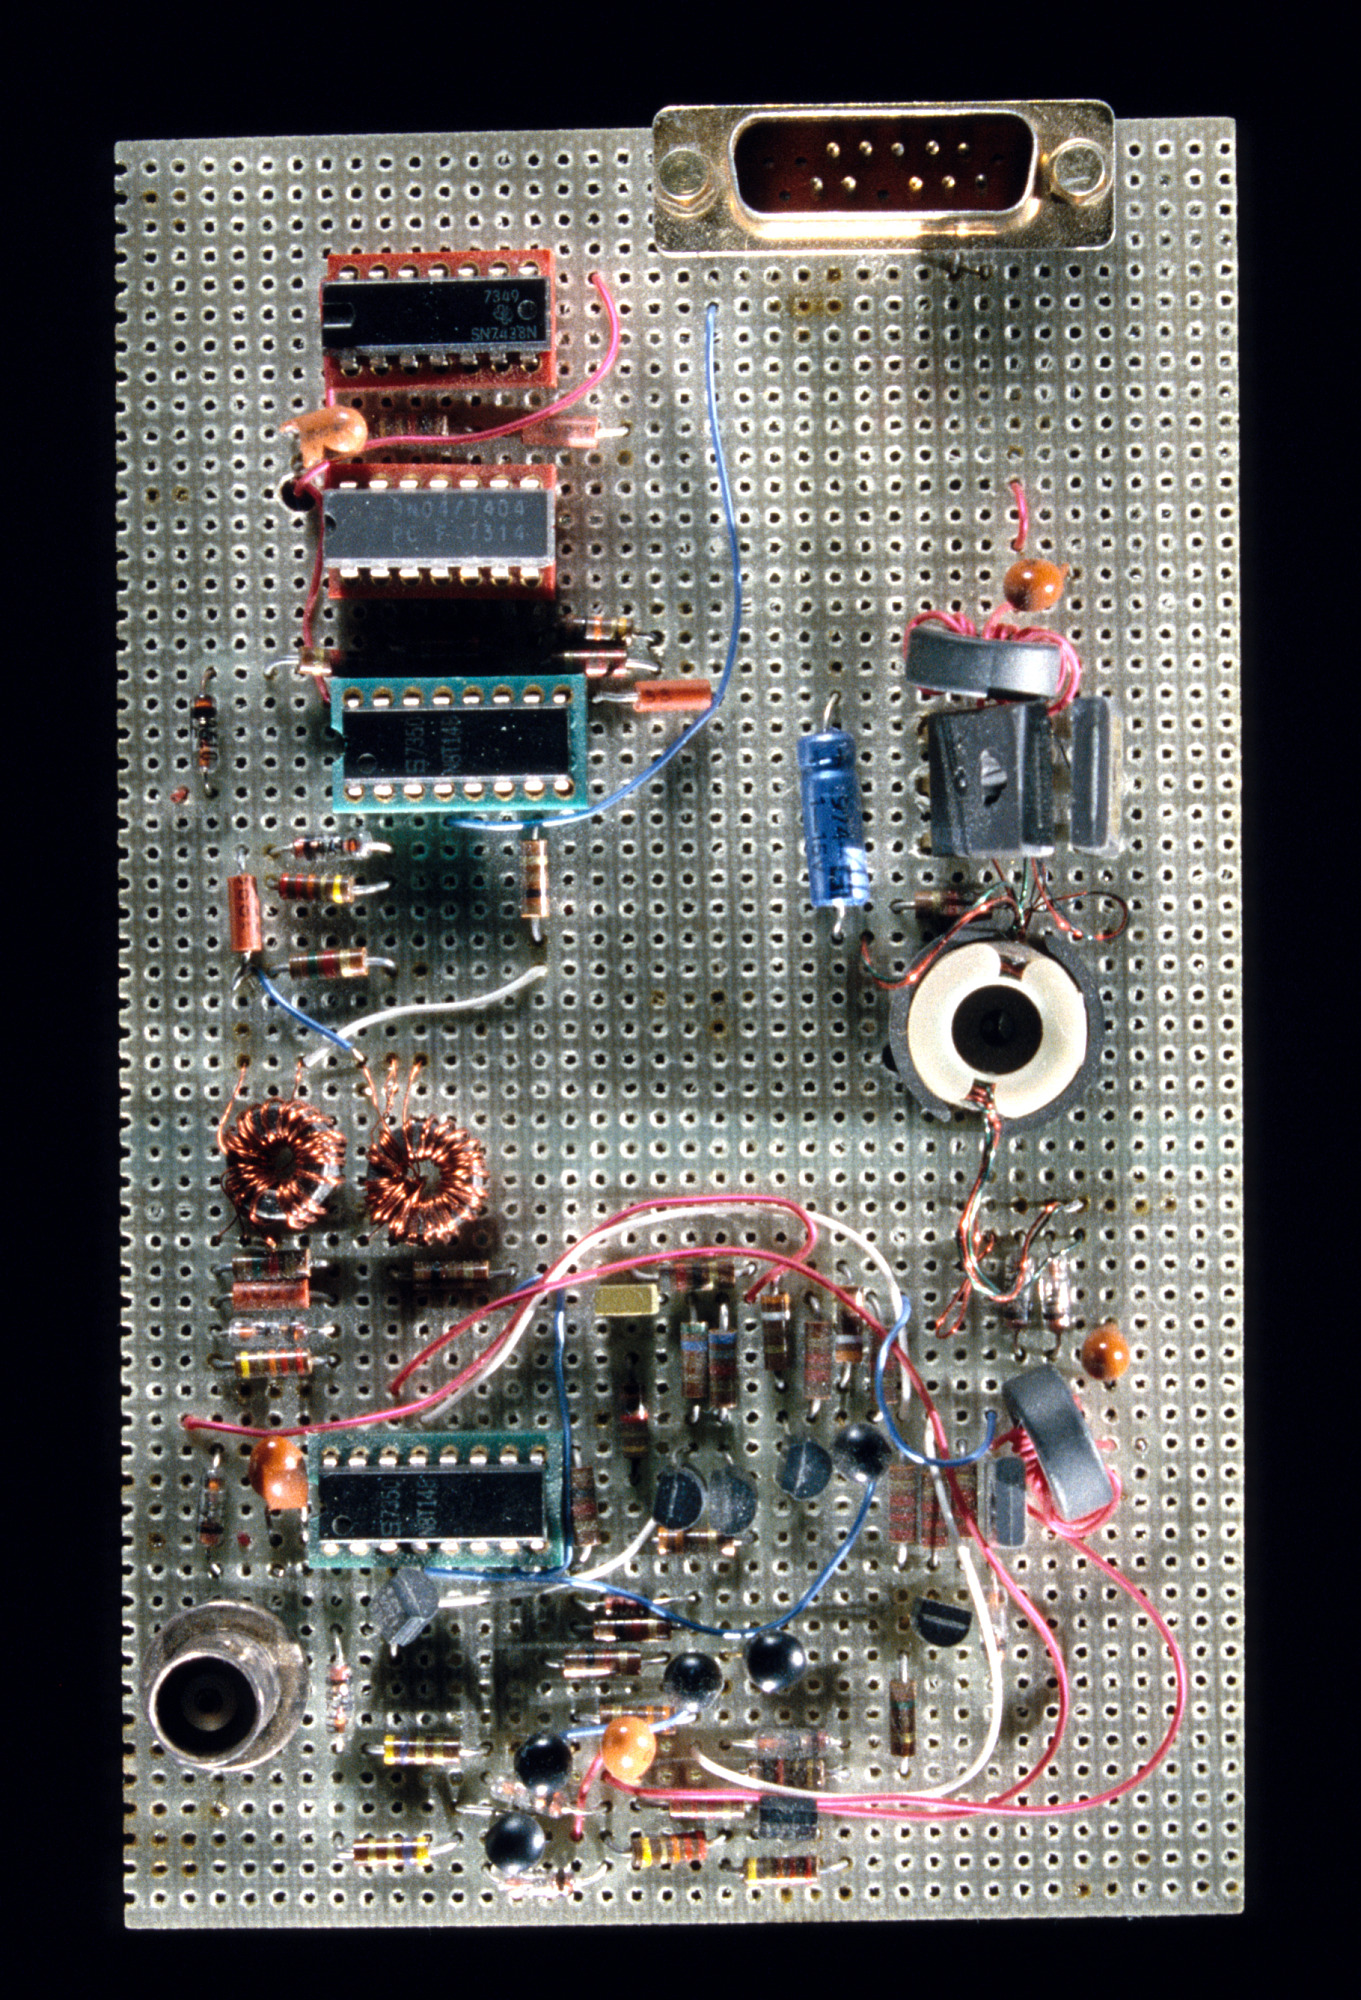 Ethernet Prototype Circuit Board National Museum Of American History First Design Flickr Photo Sharing